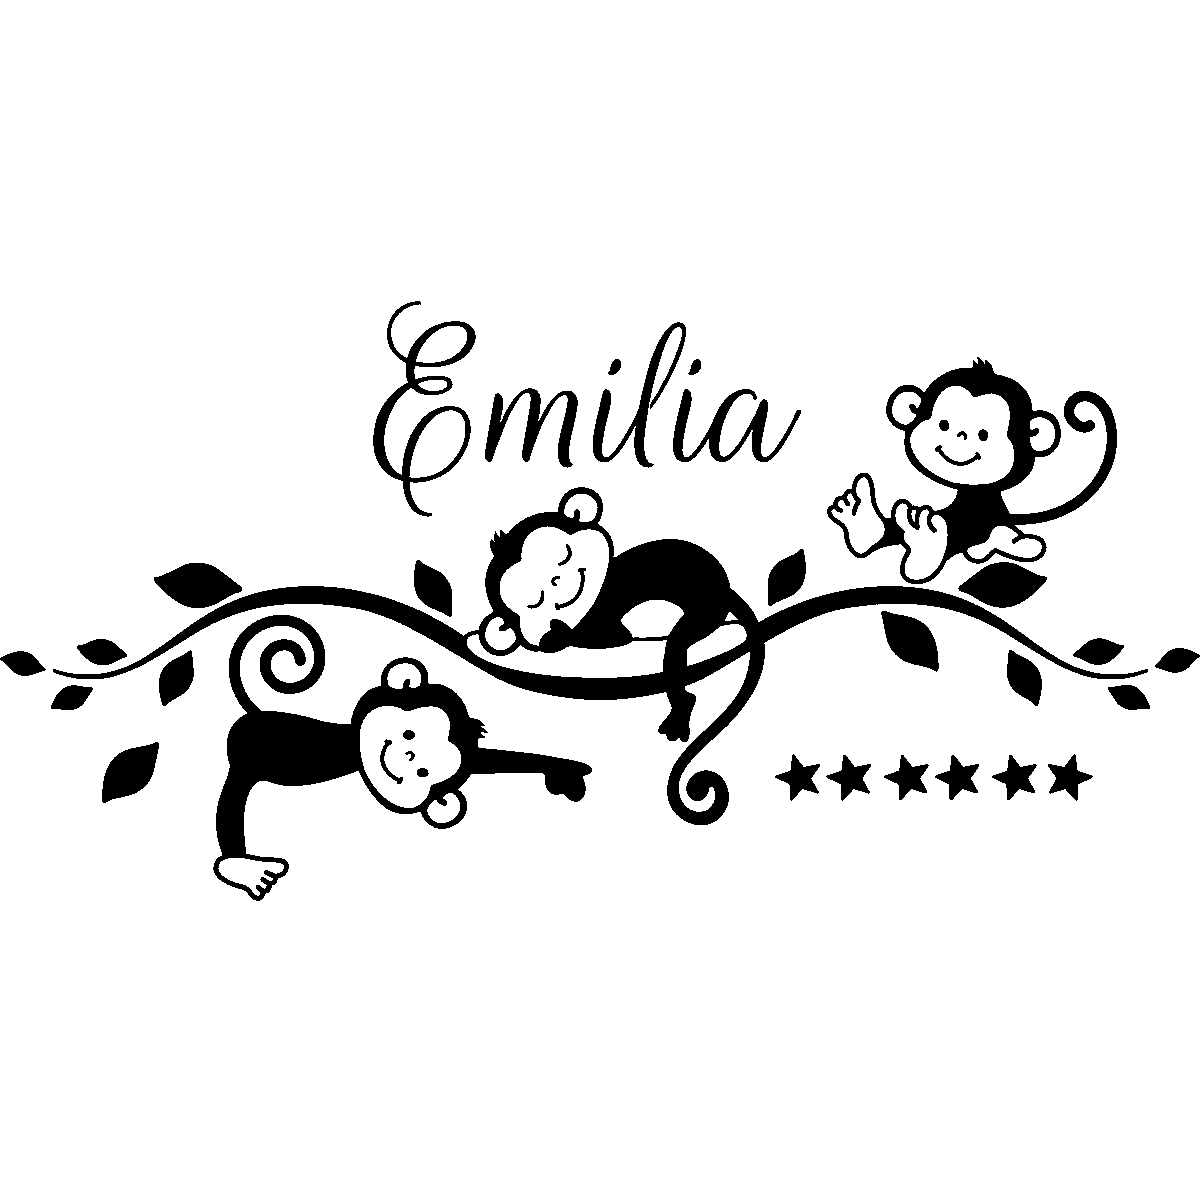 sticker pr nom personnalis singes jungle personalised stickers monkey and silhouettes. Black Bedroom Furniture Sets. Home Design Ideas